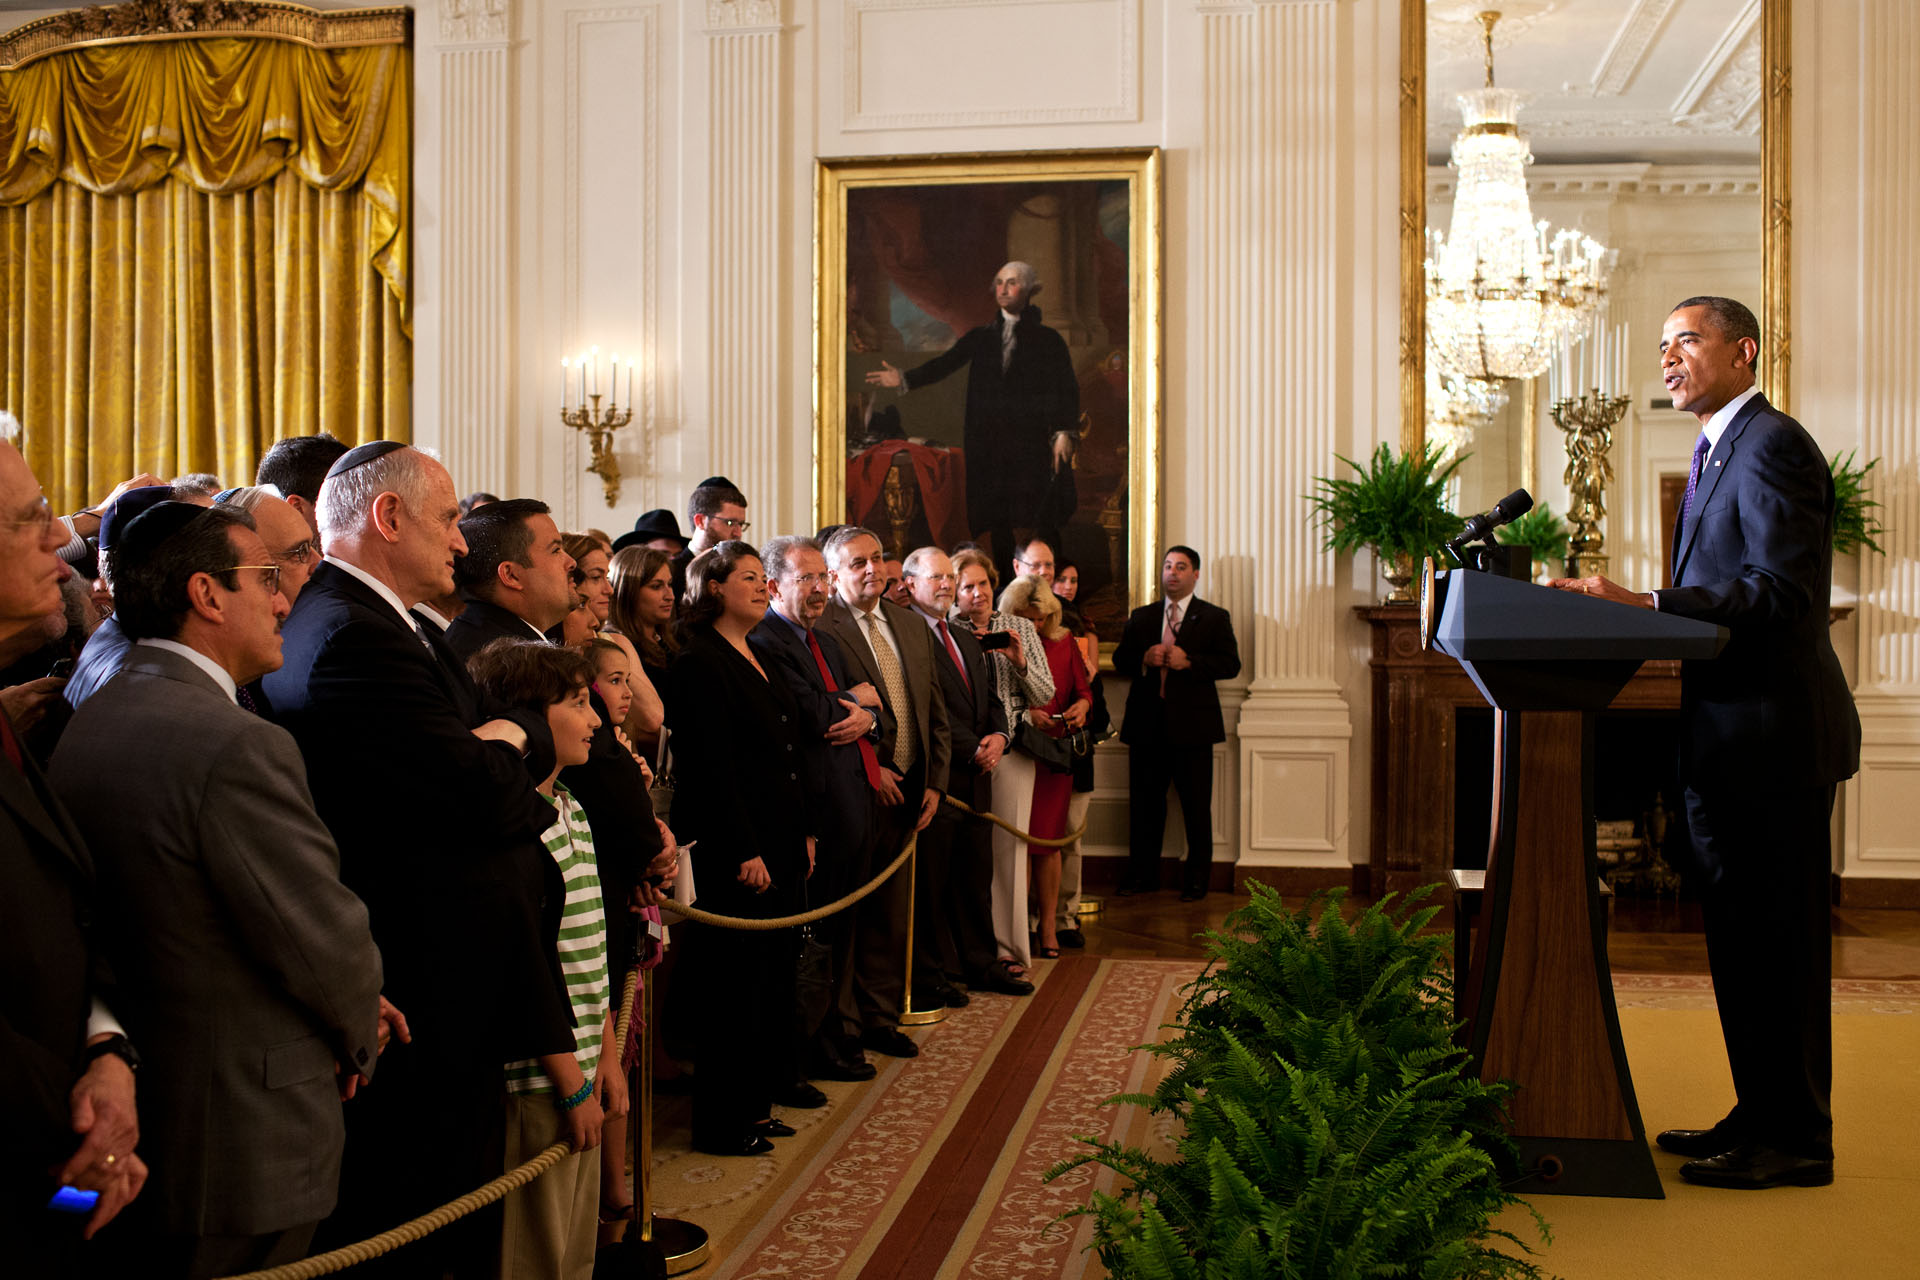 President Obama delivers remarks during a Jewish American Heritage Month reception May 30, 2012